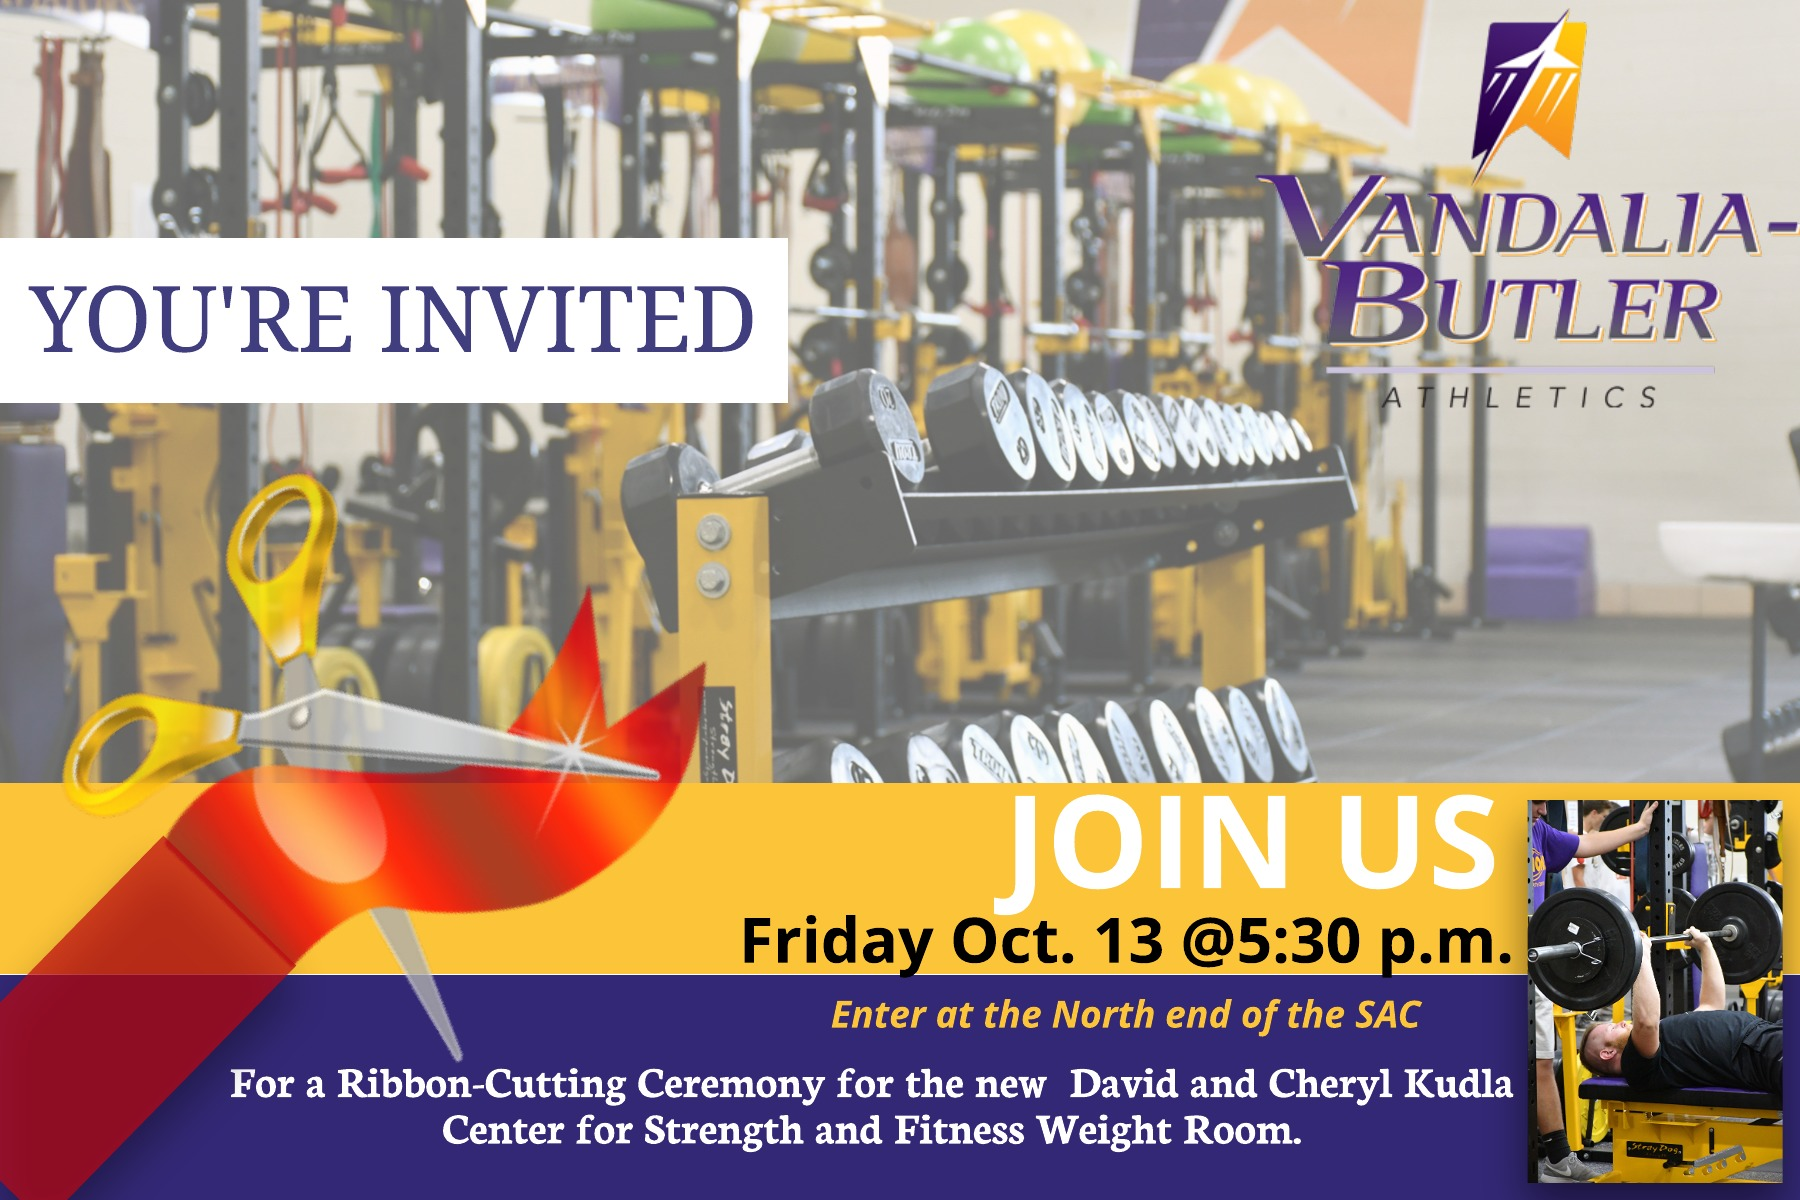 Join Us for a Ribbon-Cutting Ceremony!